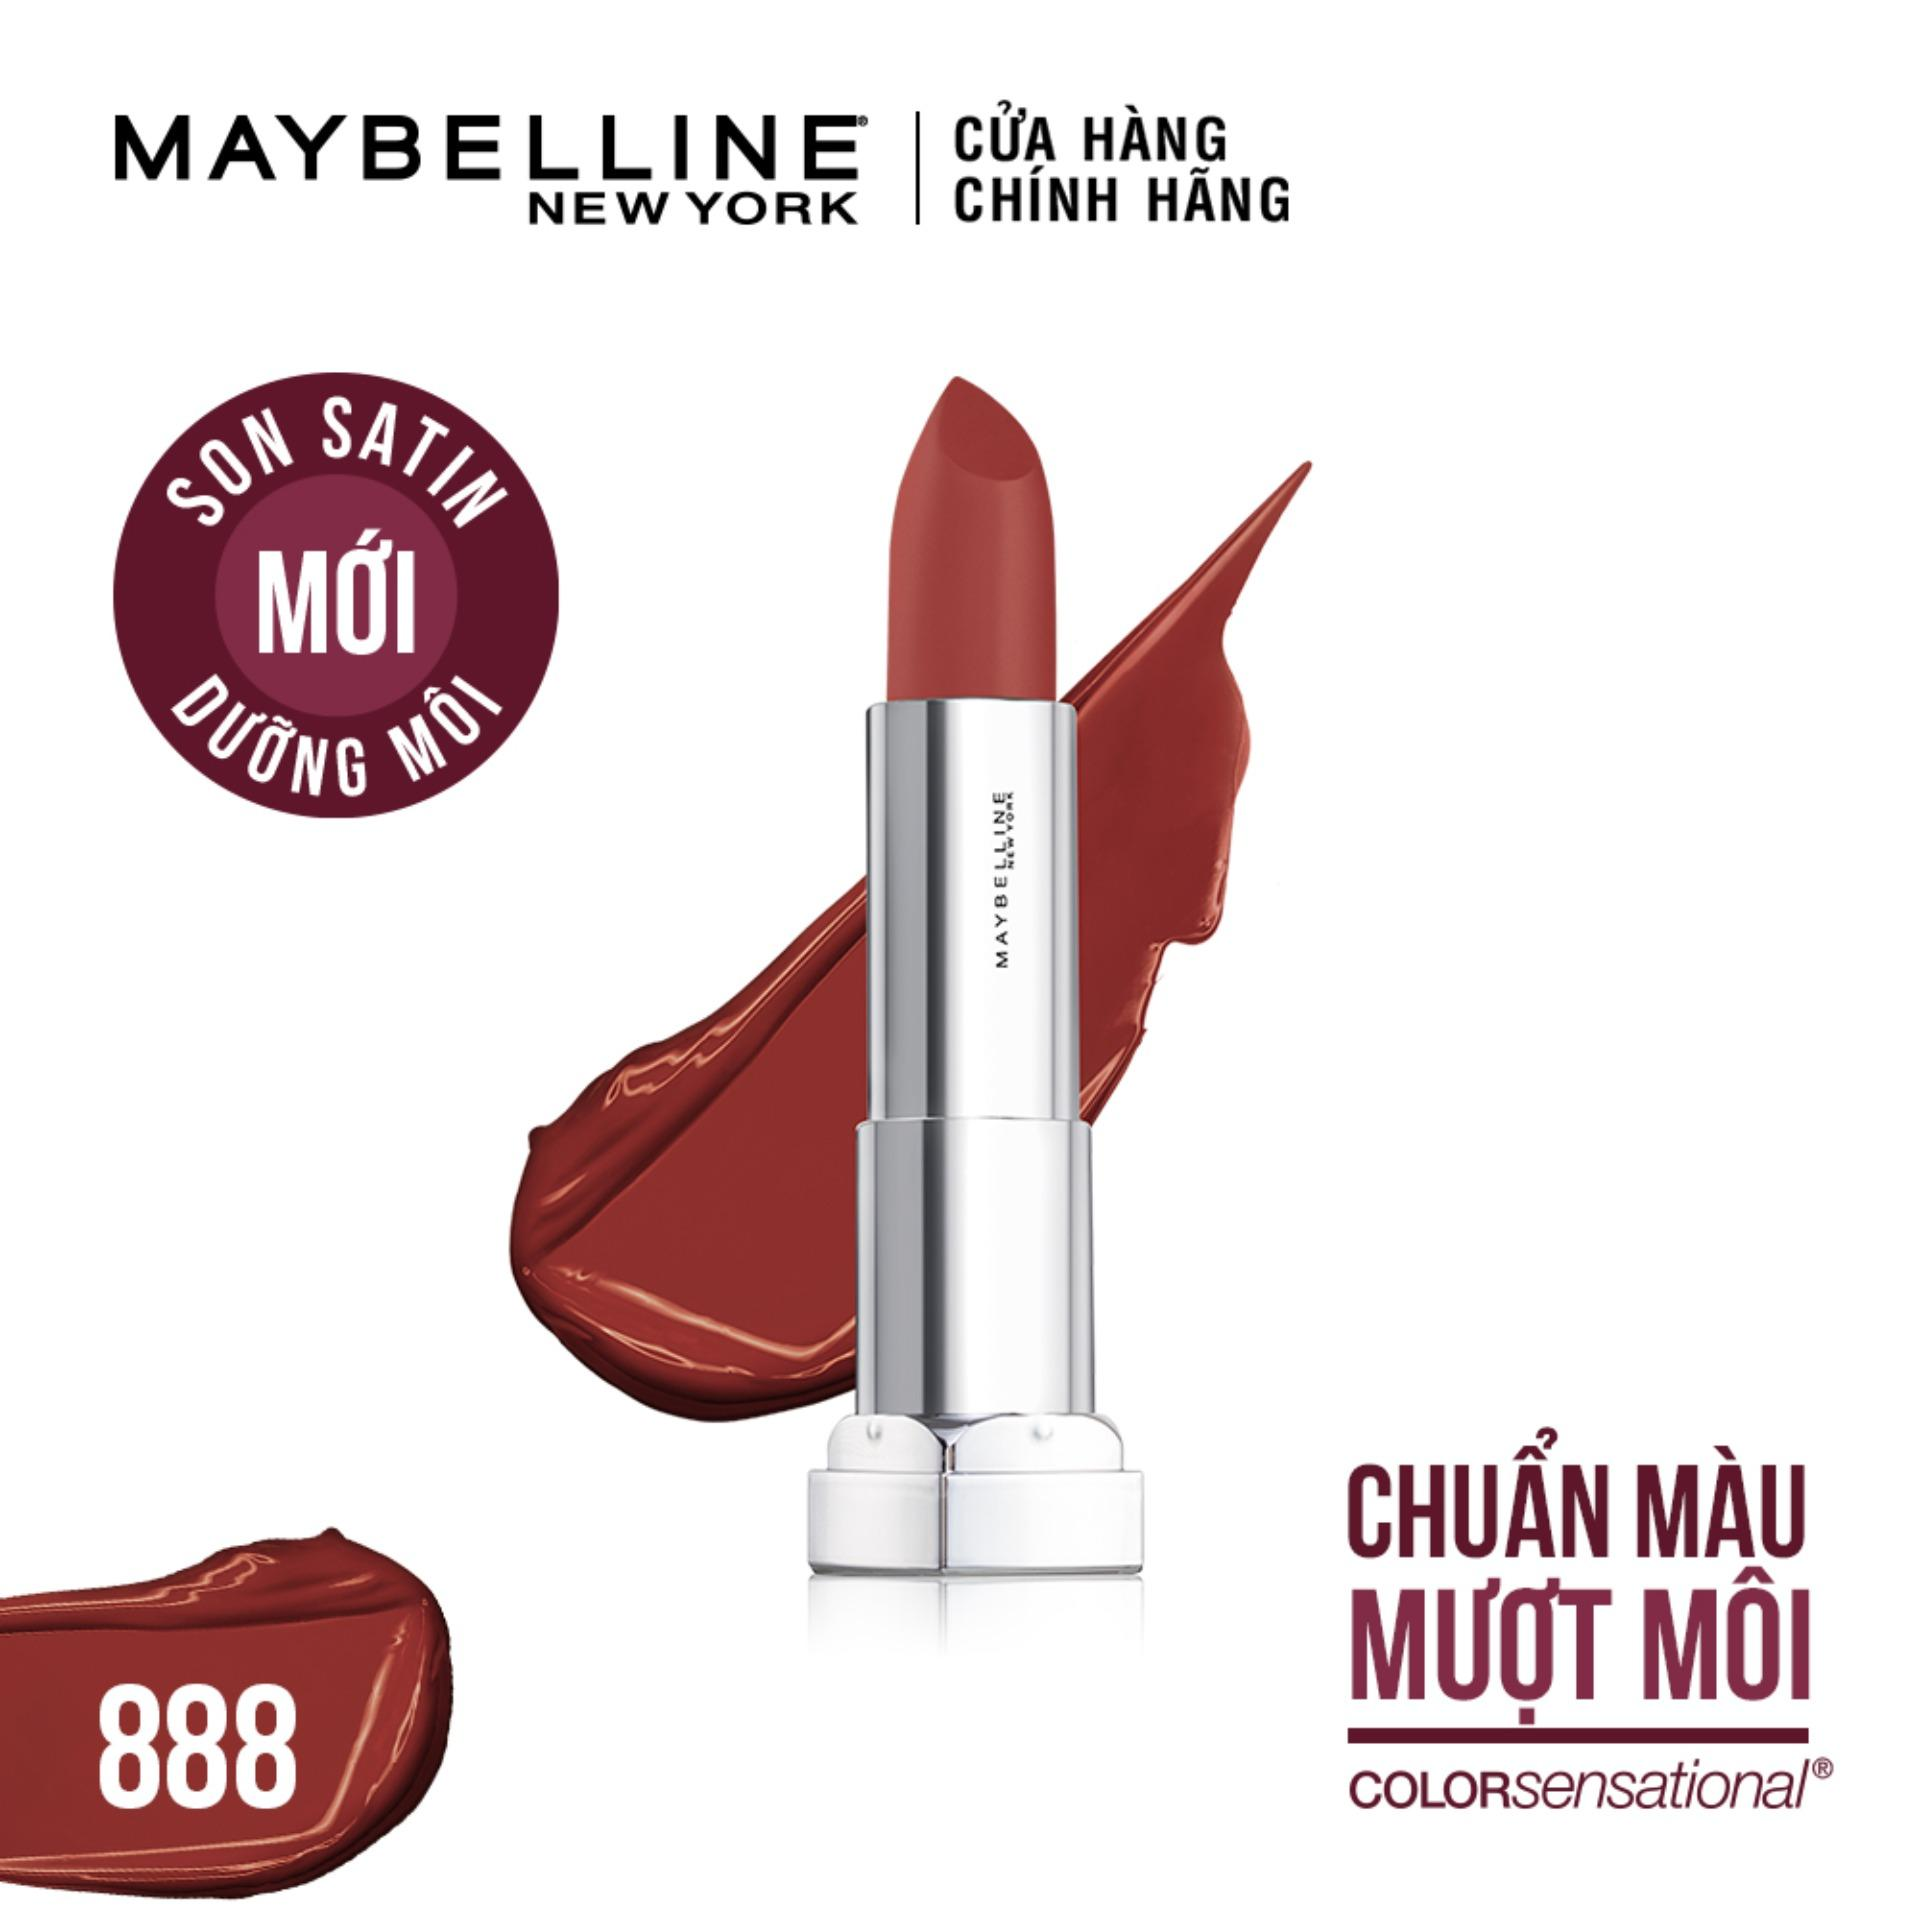 Son satin dưỡng môi Maybelline New York Color Sensational State Your Color 3.9g tốt nhất